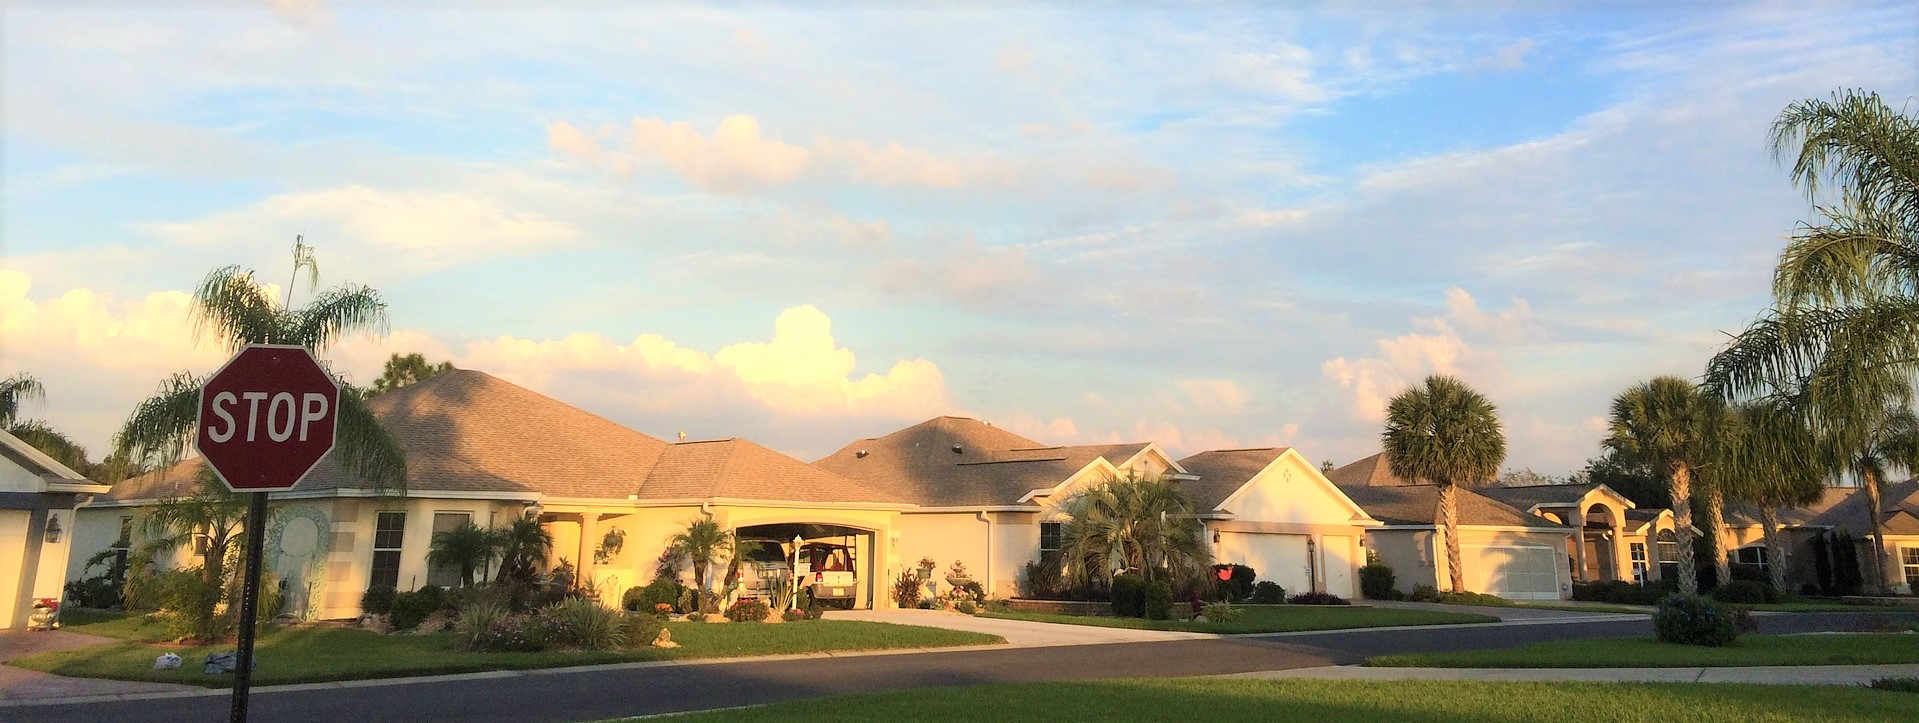 Sunset at The Villages, Florida | Breast Cancer Car Donations